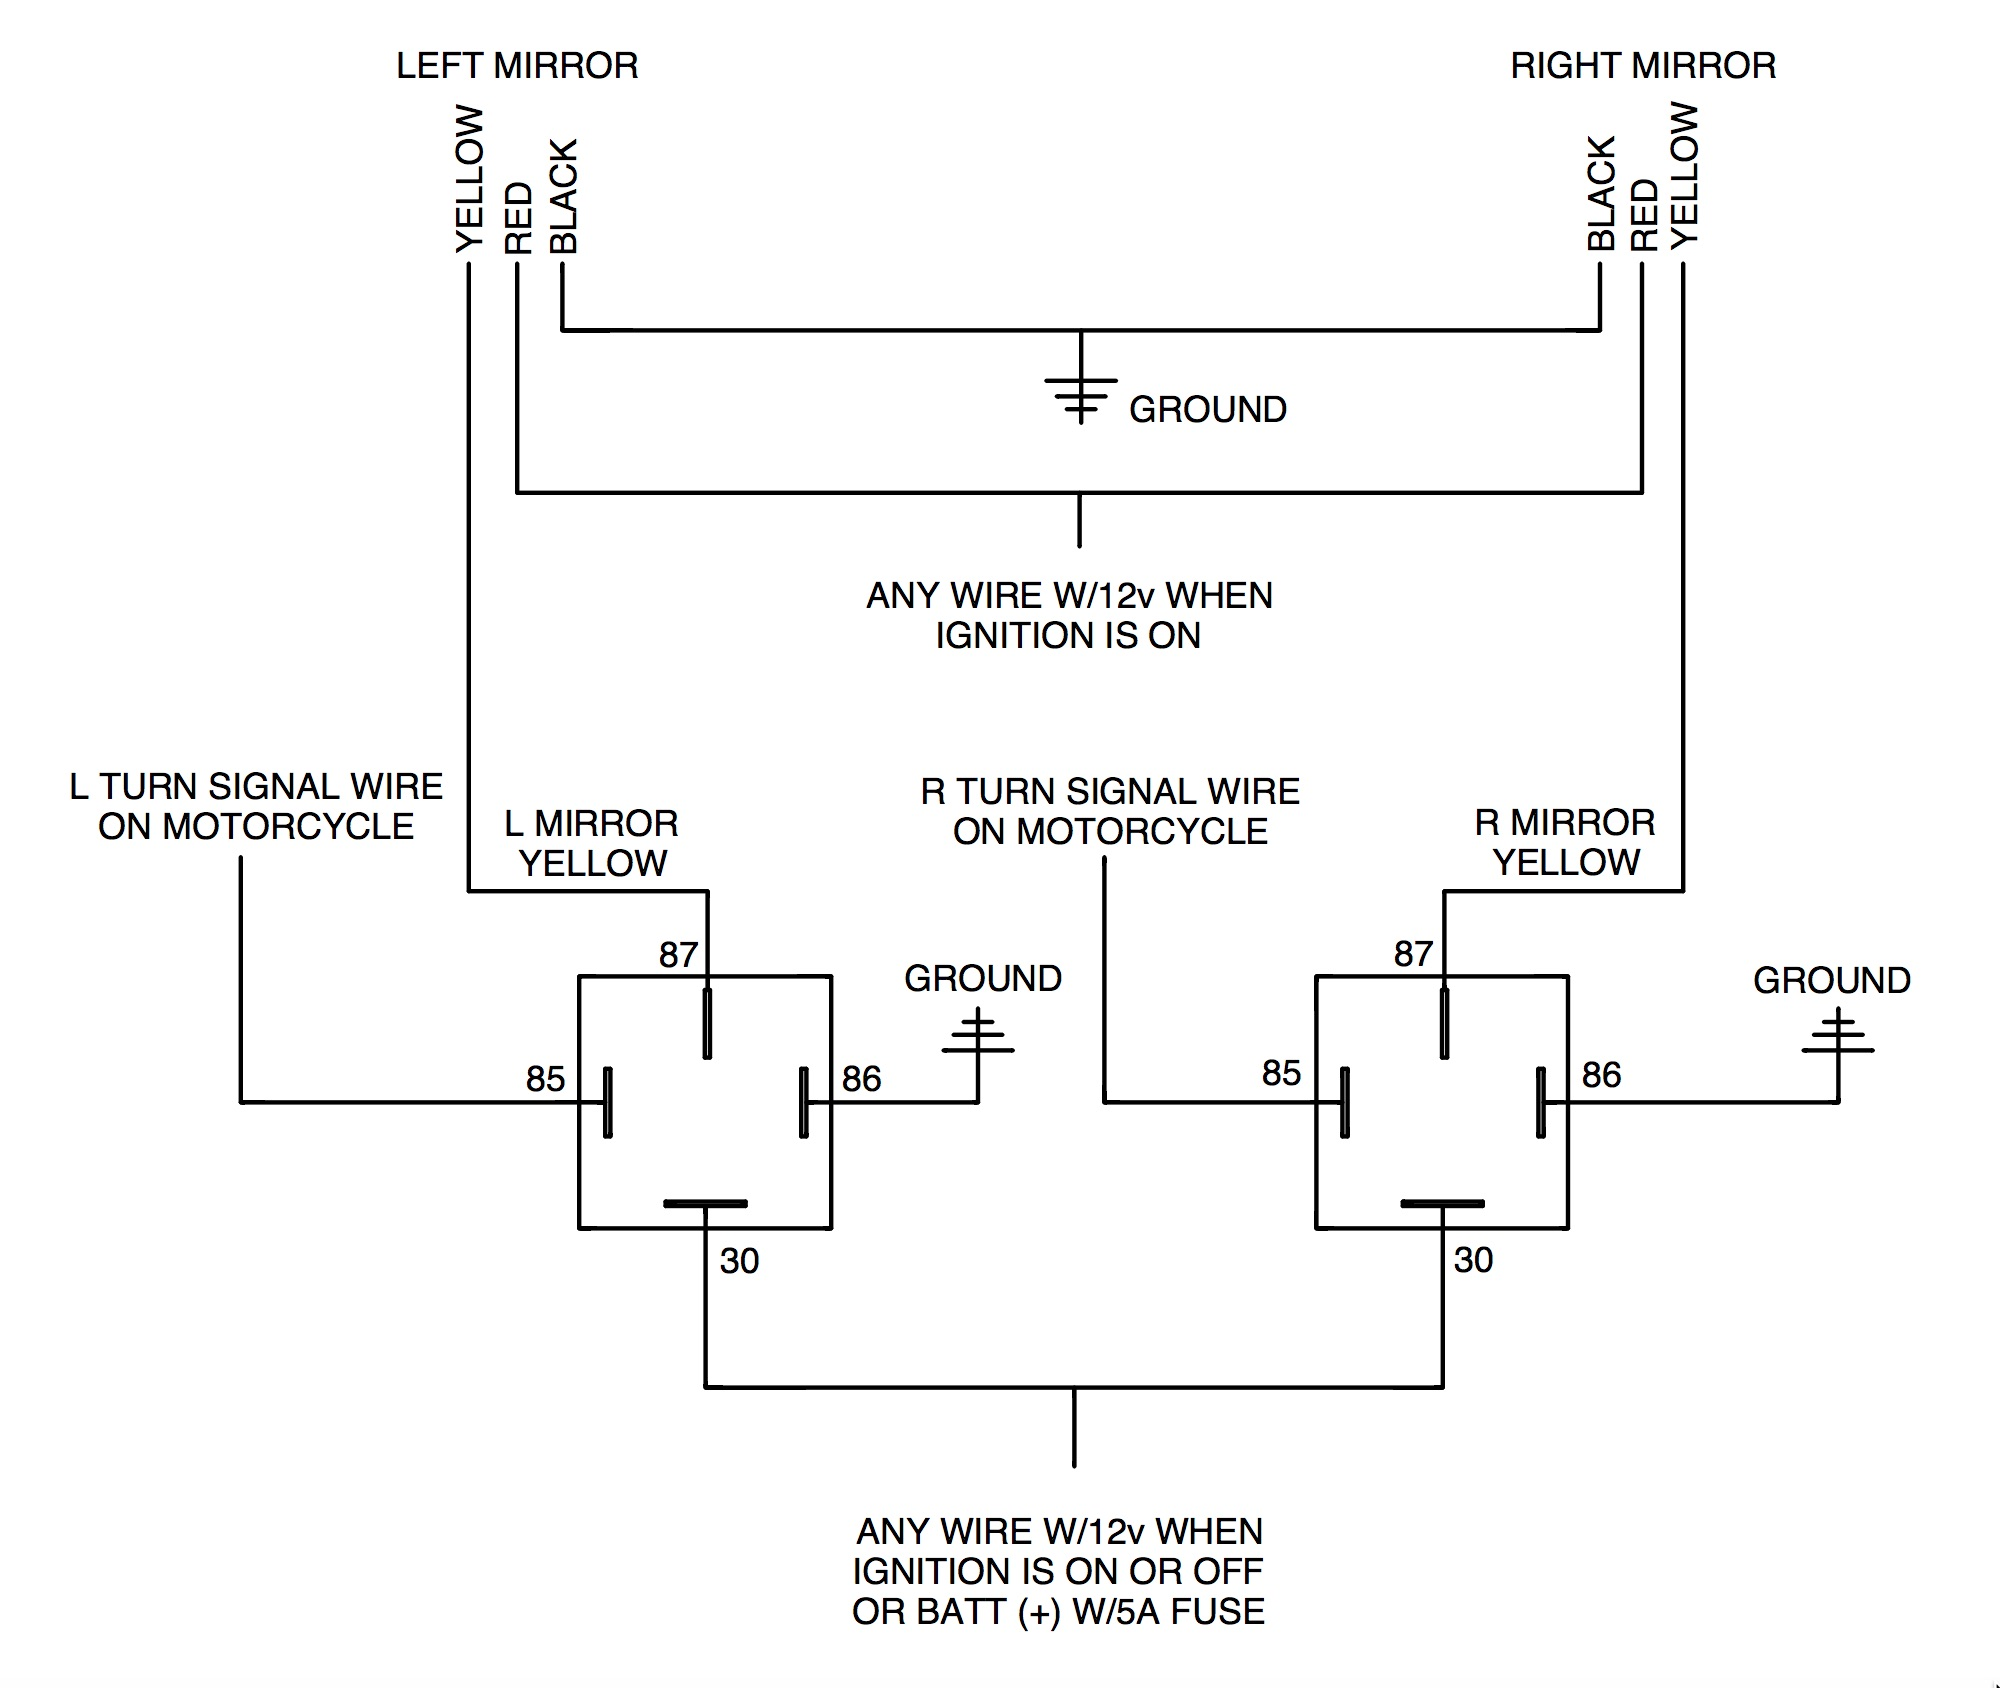 Rivco dual relay diagram adding rivco led mirrors to a victory cross country motorcycle Basic Turn Signal Wiring Diagram at virtualis.co